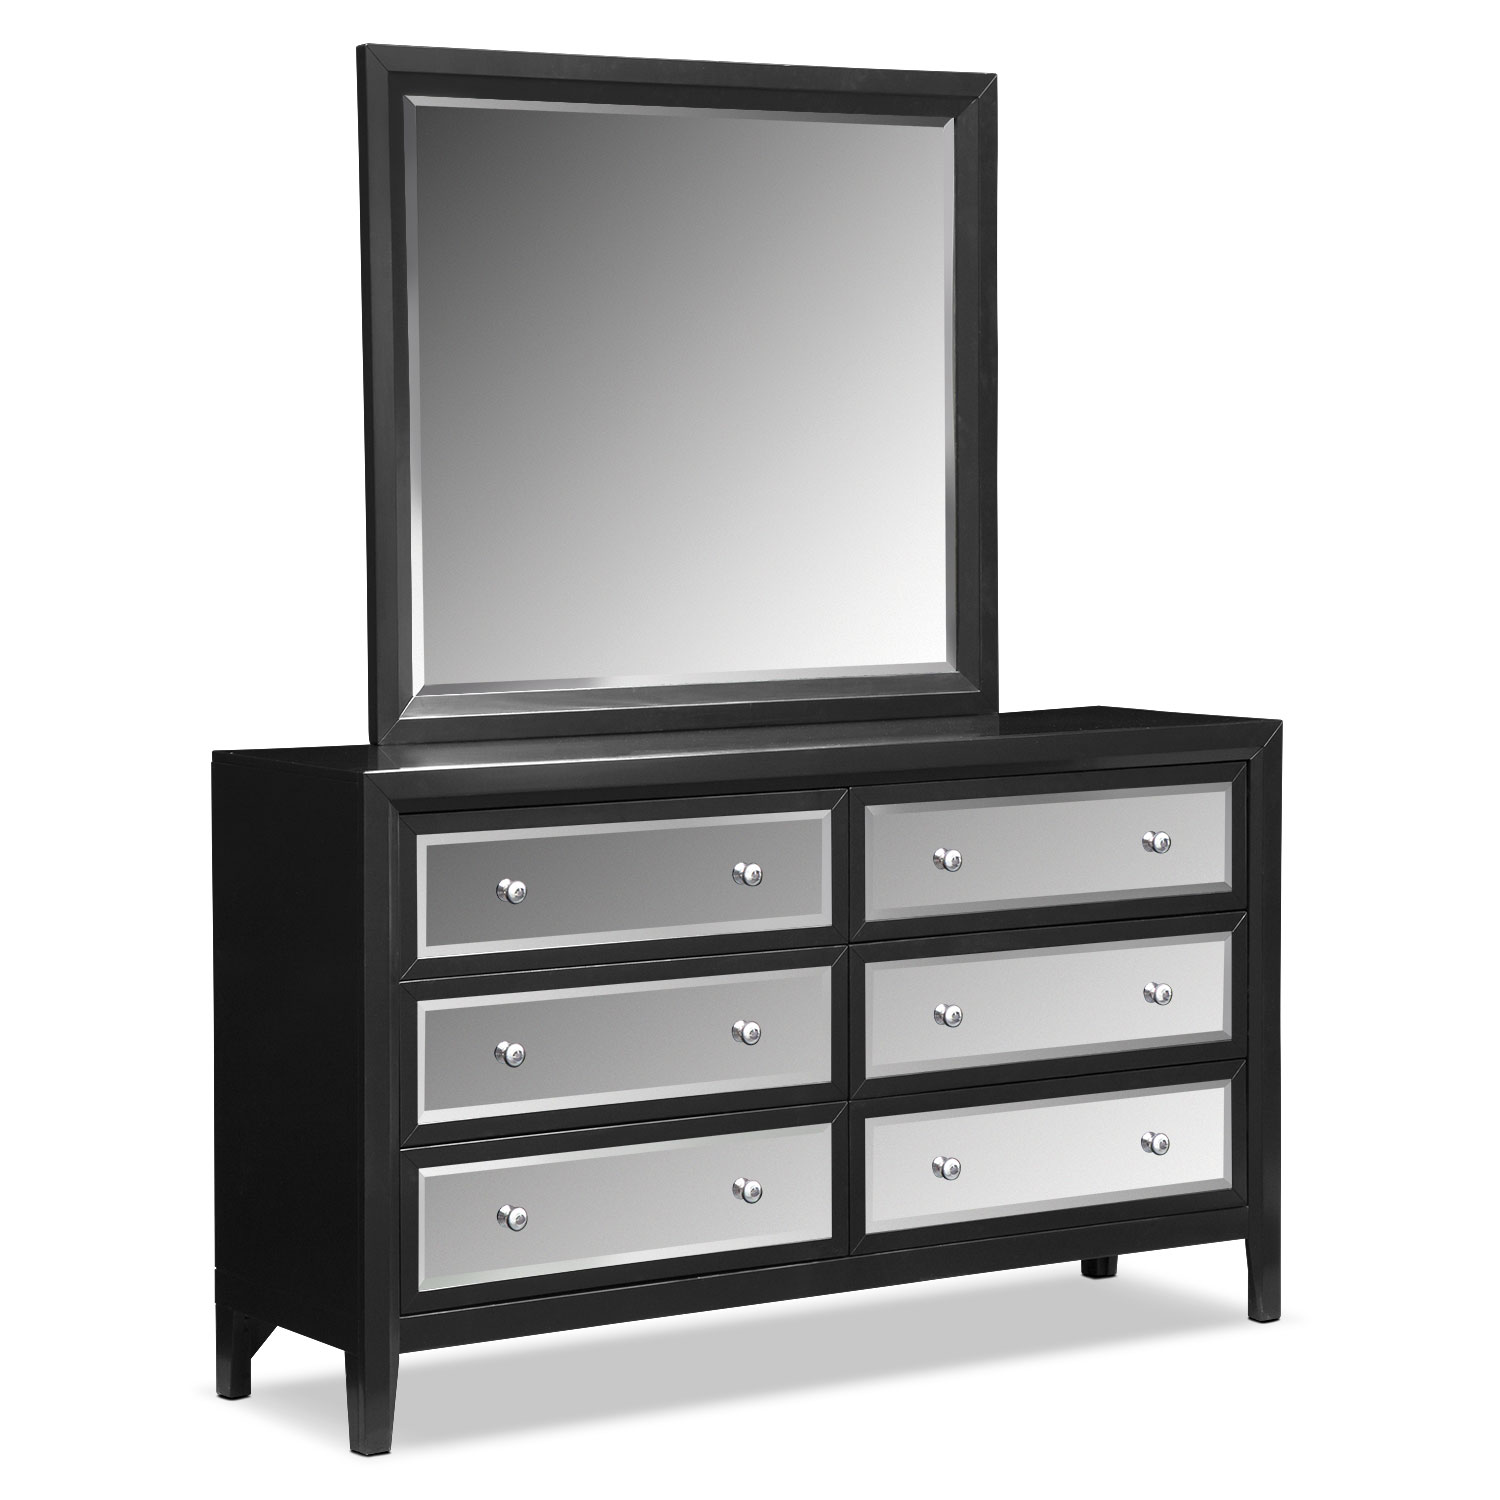 drawer style and bold xv black louis thee n vintage gold henredon unbridled frenchy dresser luxury serpentine